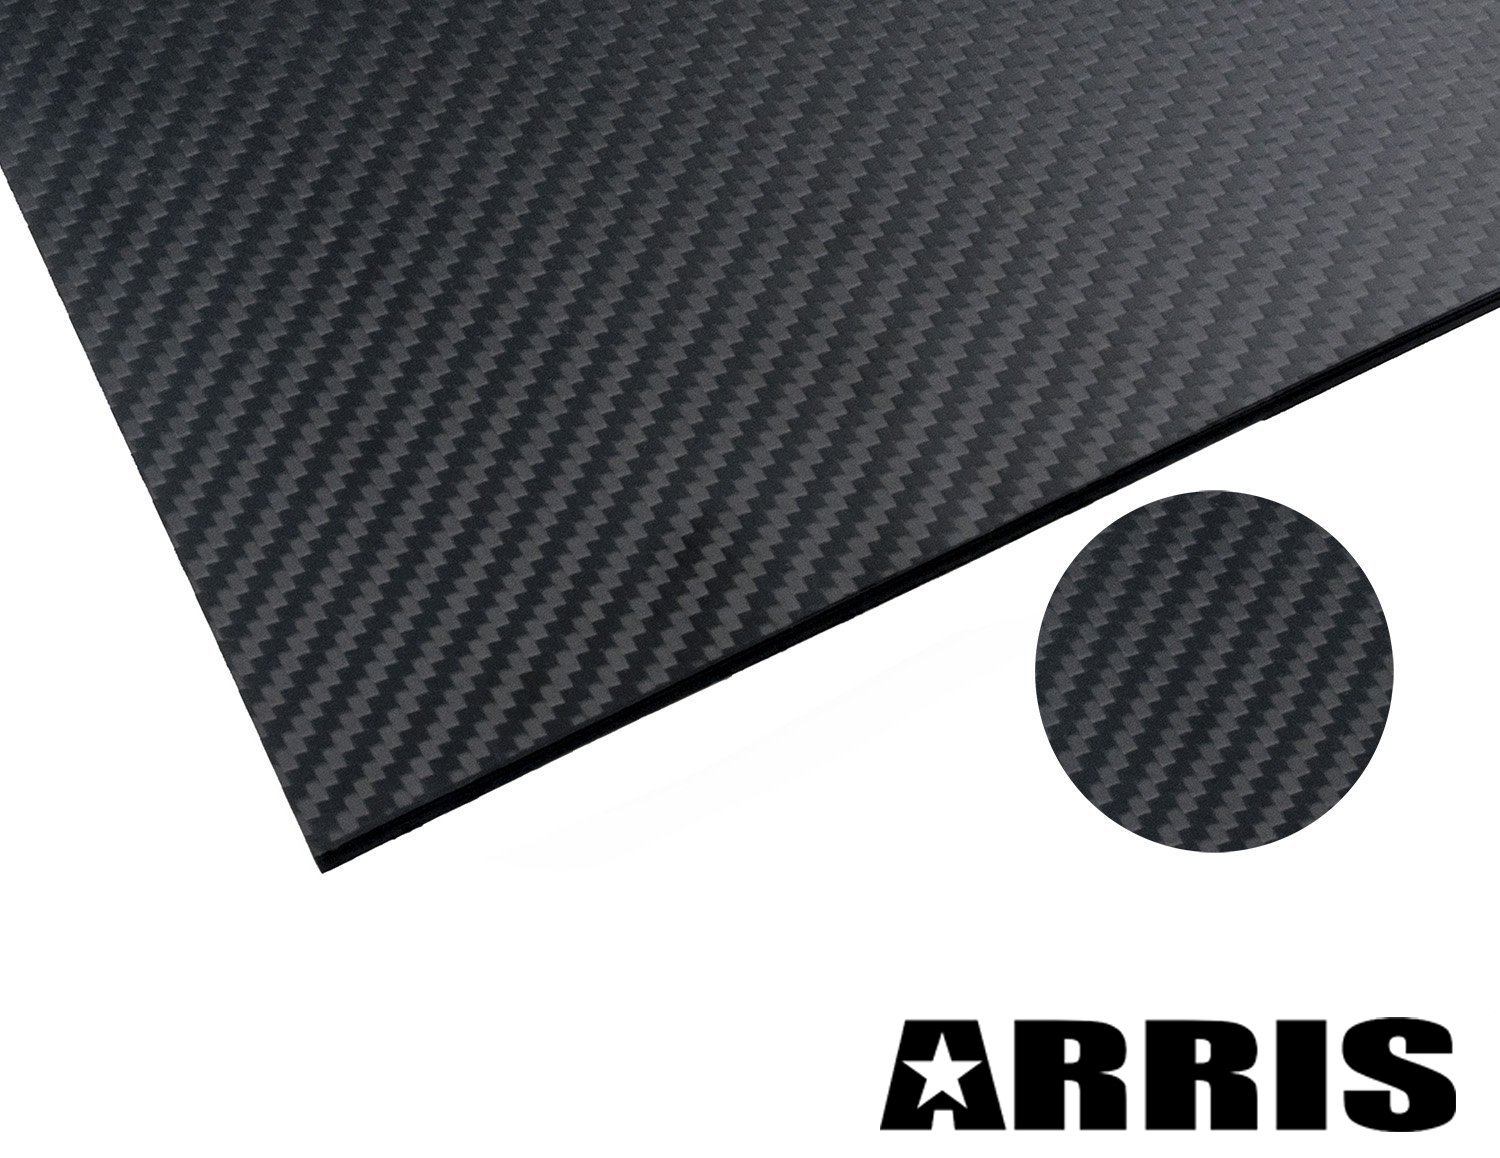 ARRIS 200X300X2.5MM 100% 3K Carbon Fiber Plate Plain Weave Panel Sheet 2.5mm Thickness(Glossy Surface) by ARRIS